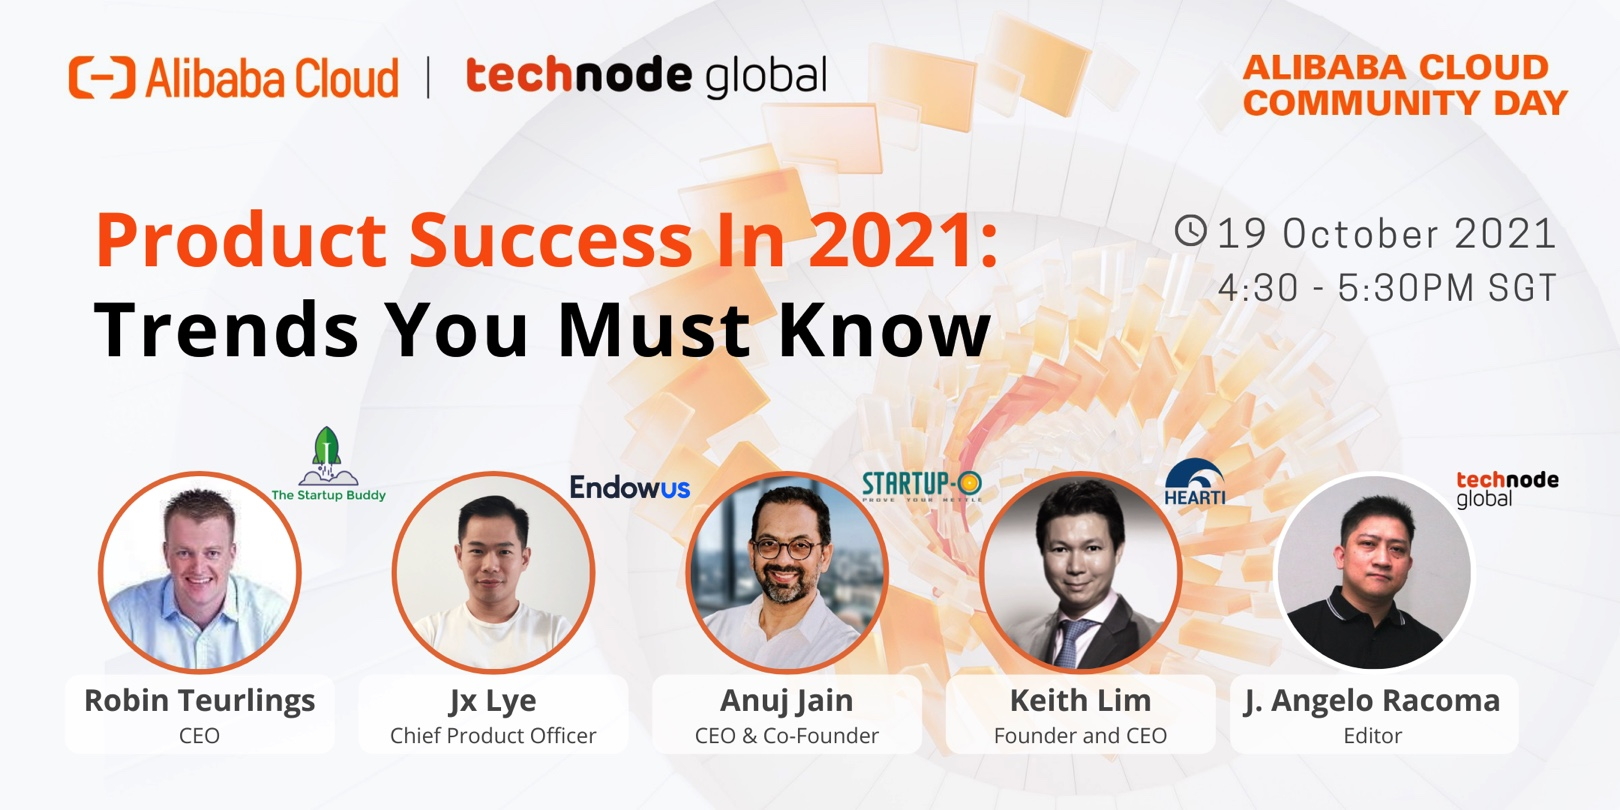 Alibaba Cloud Community Day: Product Success in 2021 - Trends You Must Know